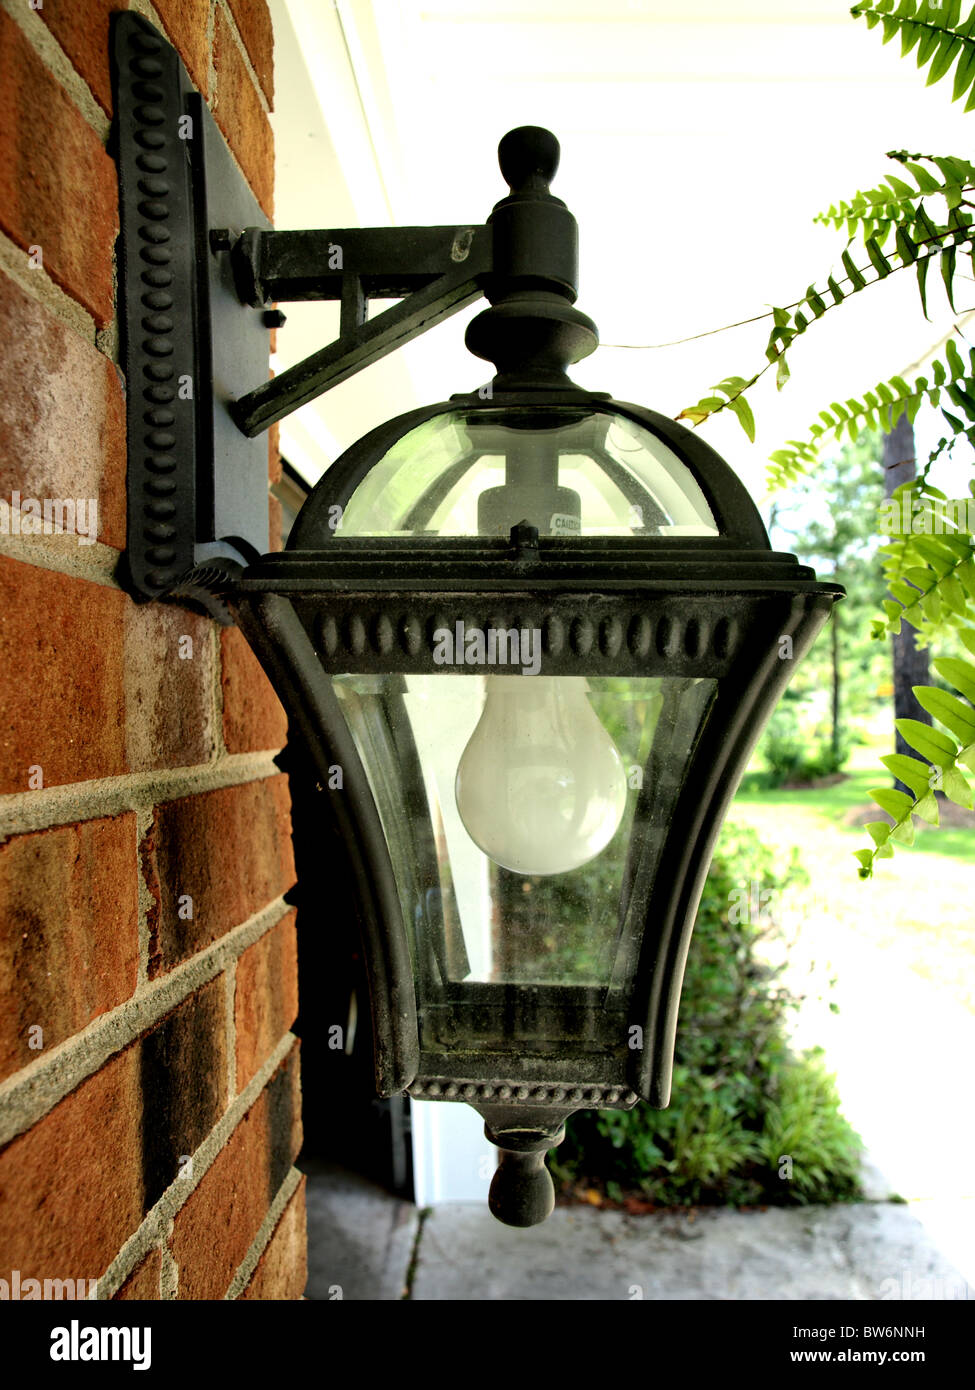 Outdoor Residential Light Fixture With White Bulb In A Metal Black Antique Frame On Red Brick Wall Bracket Glass House